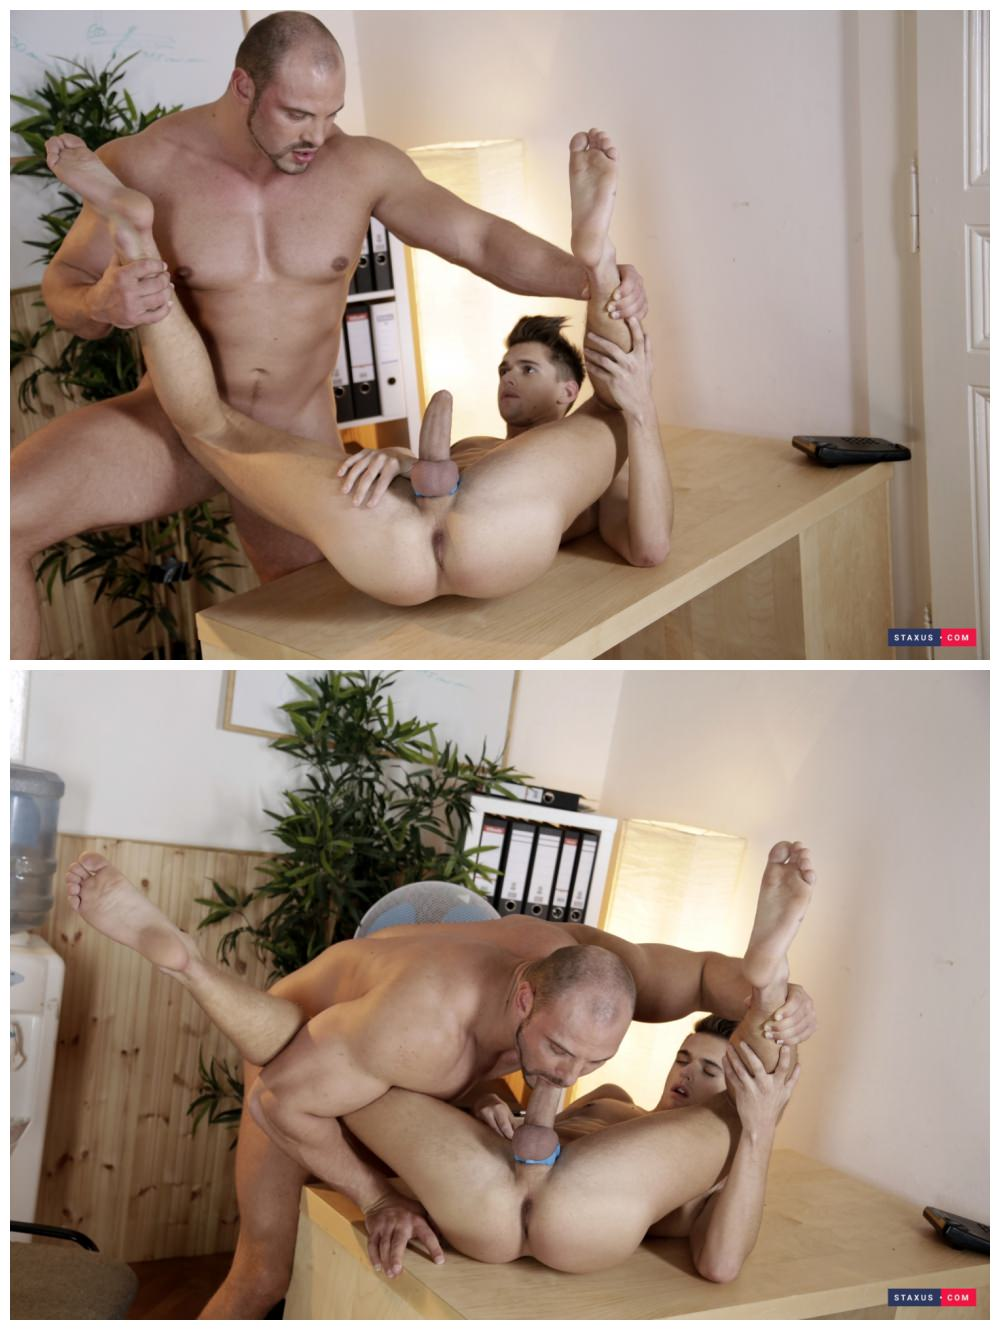 HOT FATHER AND SON GAY PORN